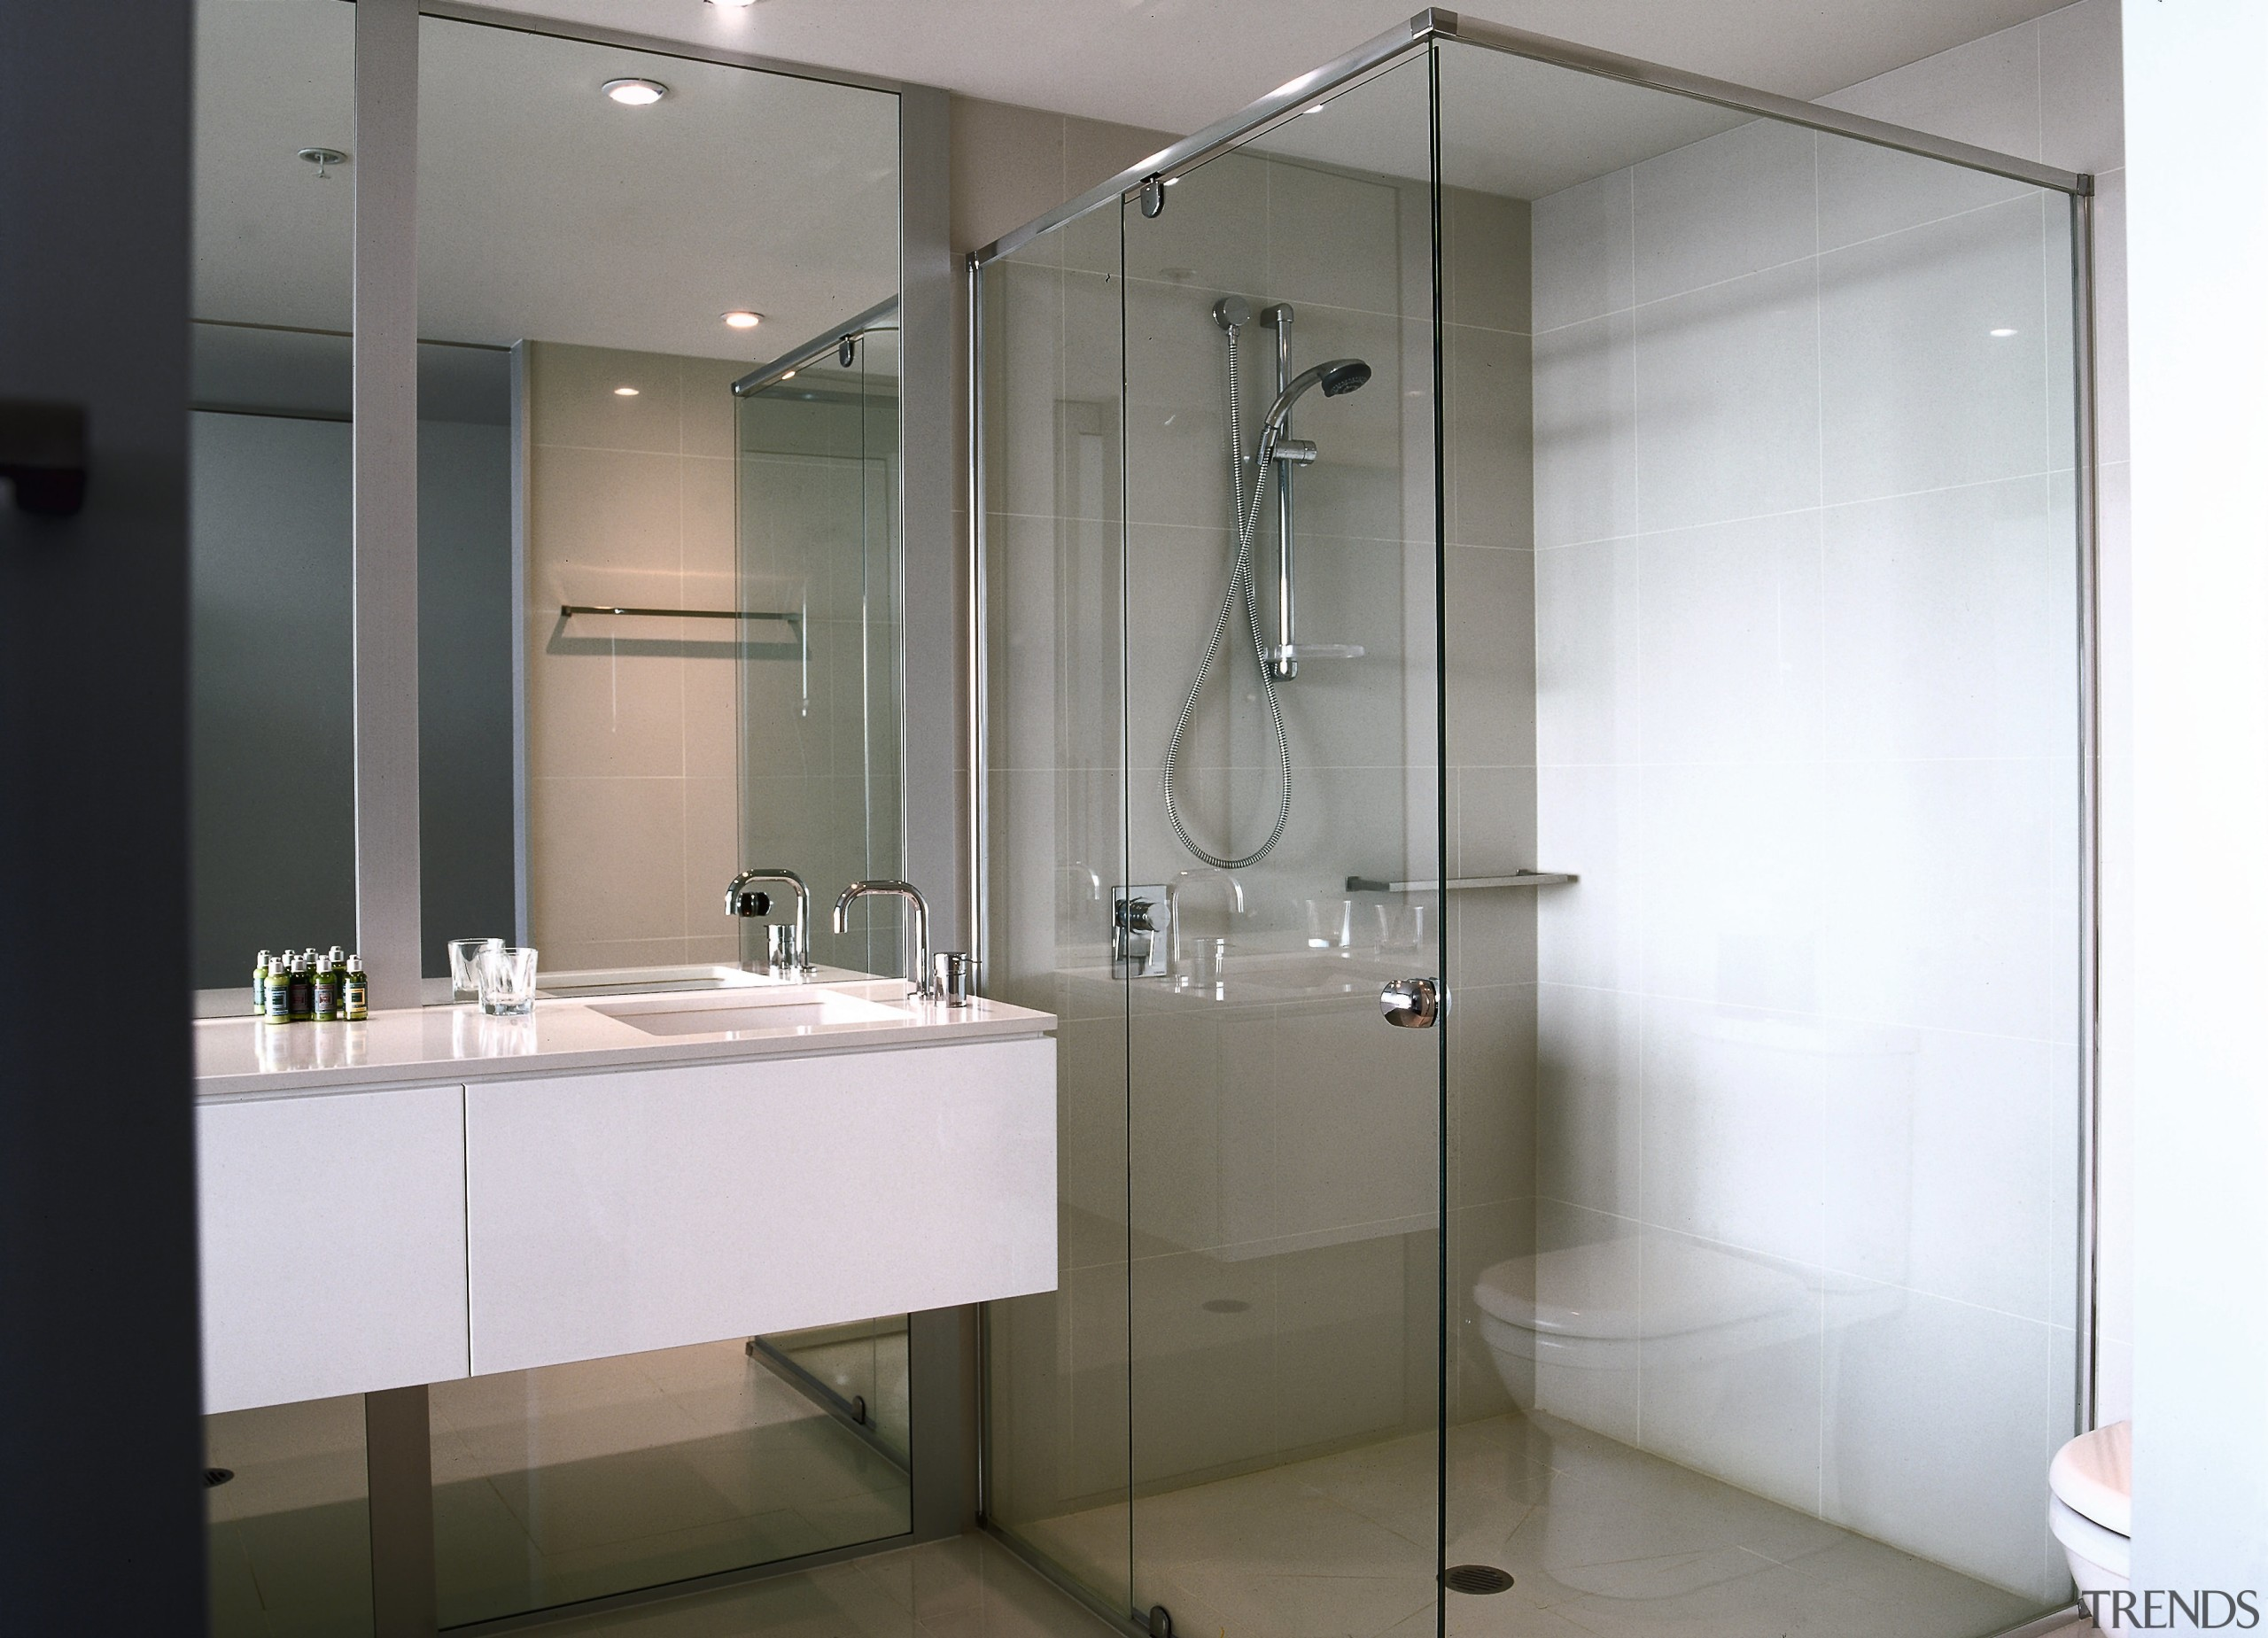 Bathroom with clear glass shower enclosure panels with bathroom, glass, interior design, plumbing fixture, product design, room, gray, white